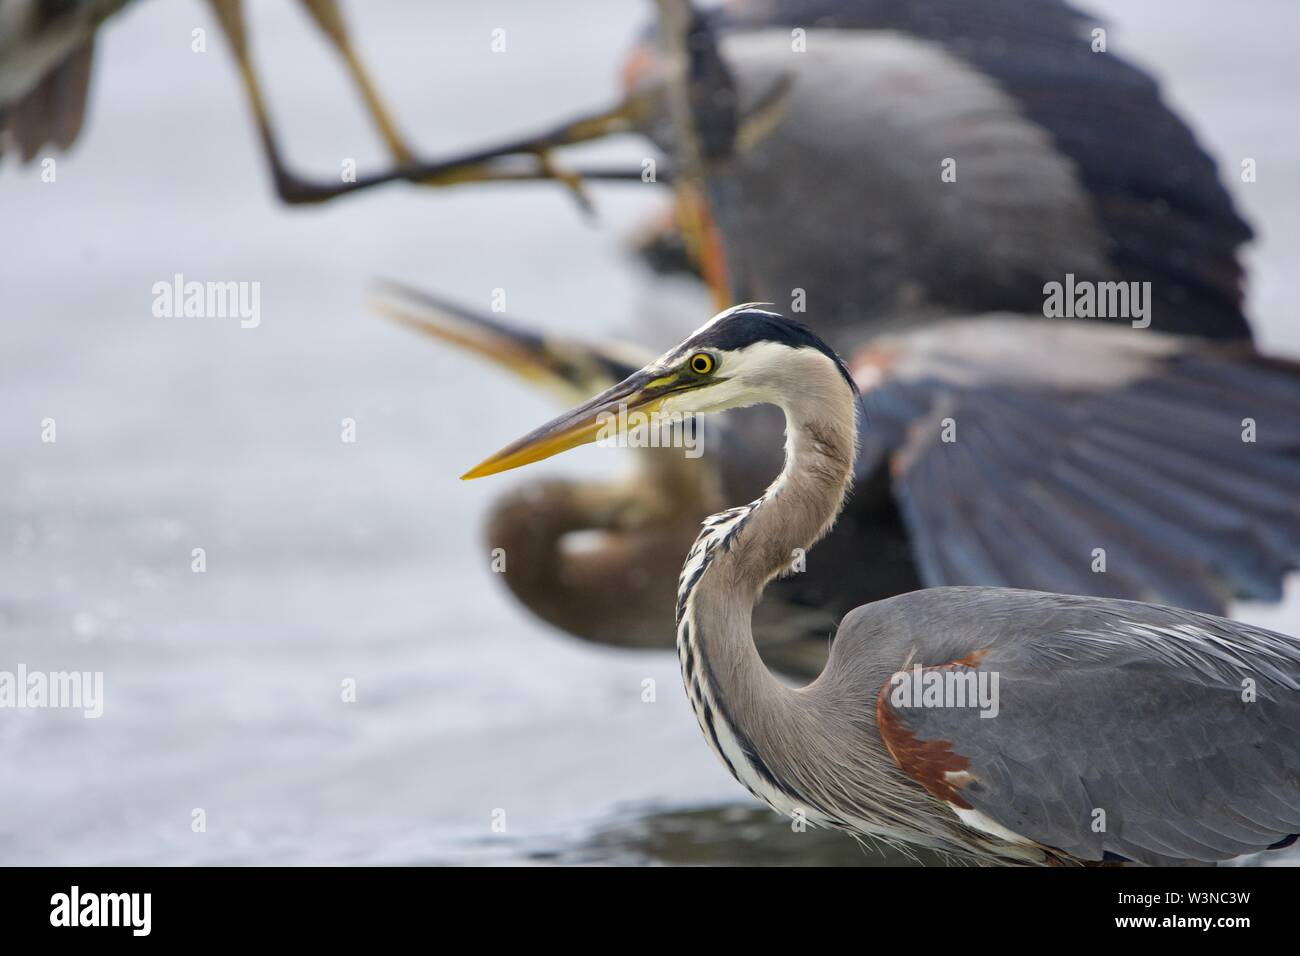 Two great blue herons quarrel while another focuses on catching a fish, Witty's Lagoon, Vancouver Island, British Columbia. - Stock Image